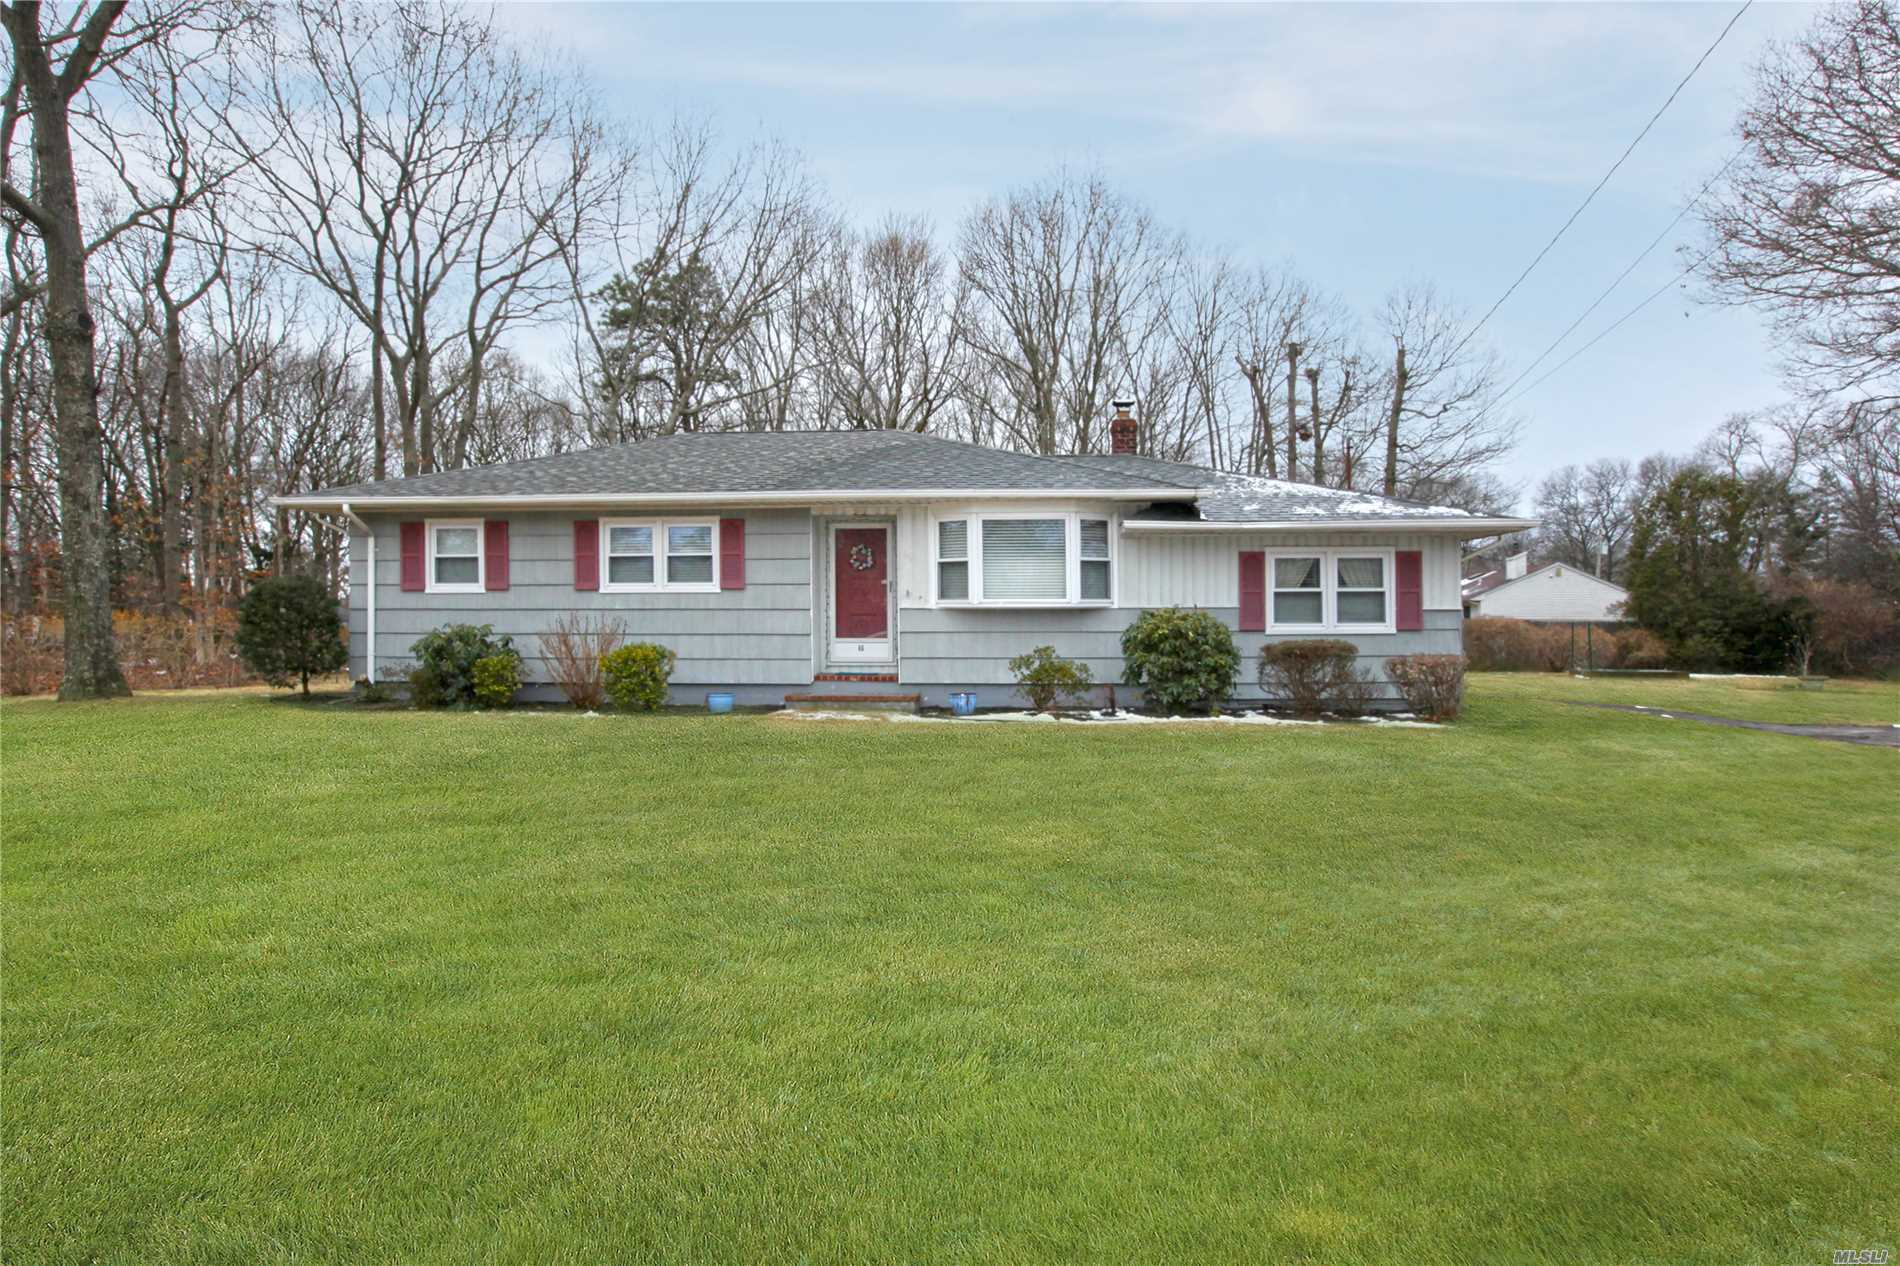 66 E Woodside Ave - Patchogue, New York